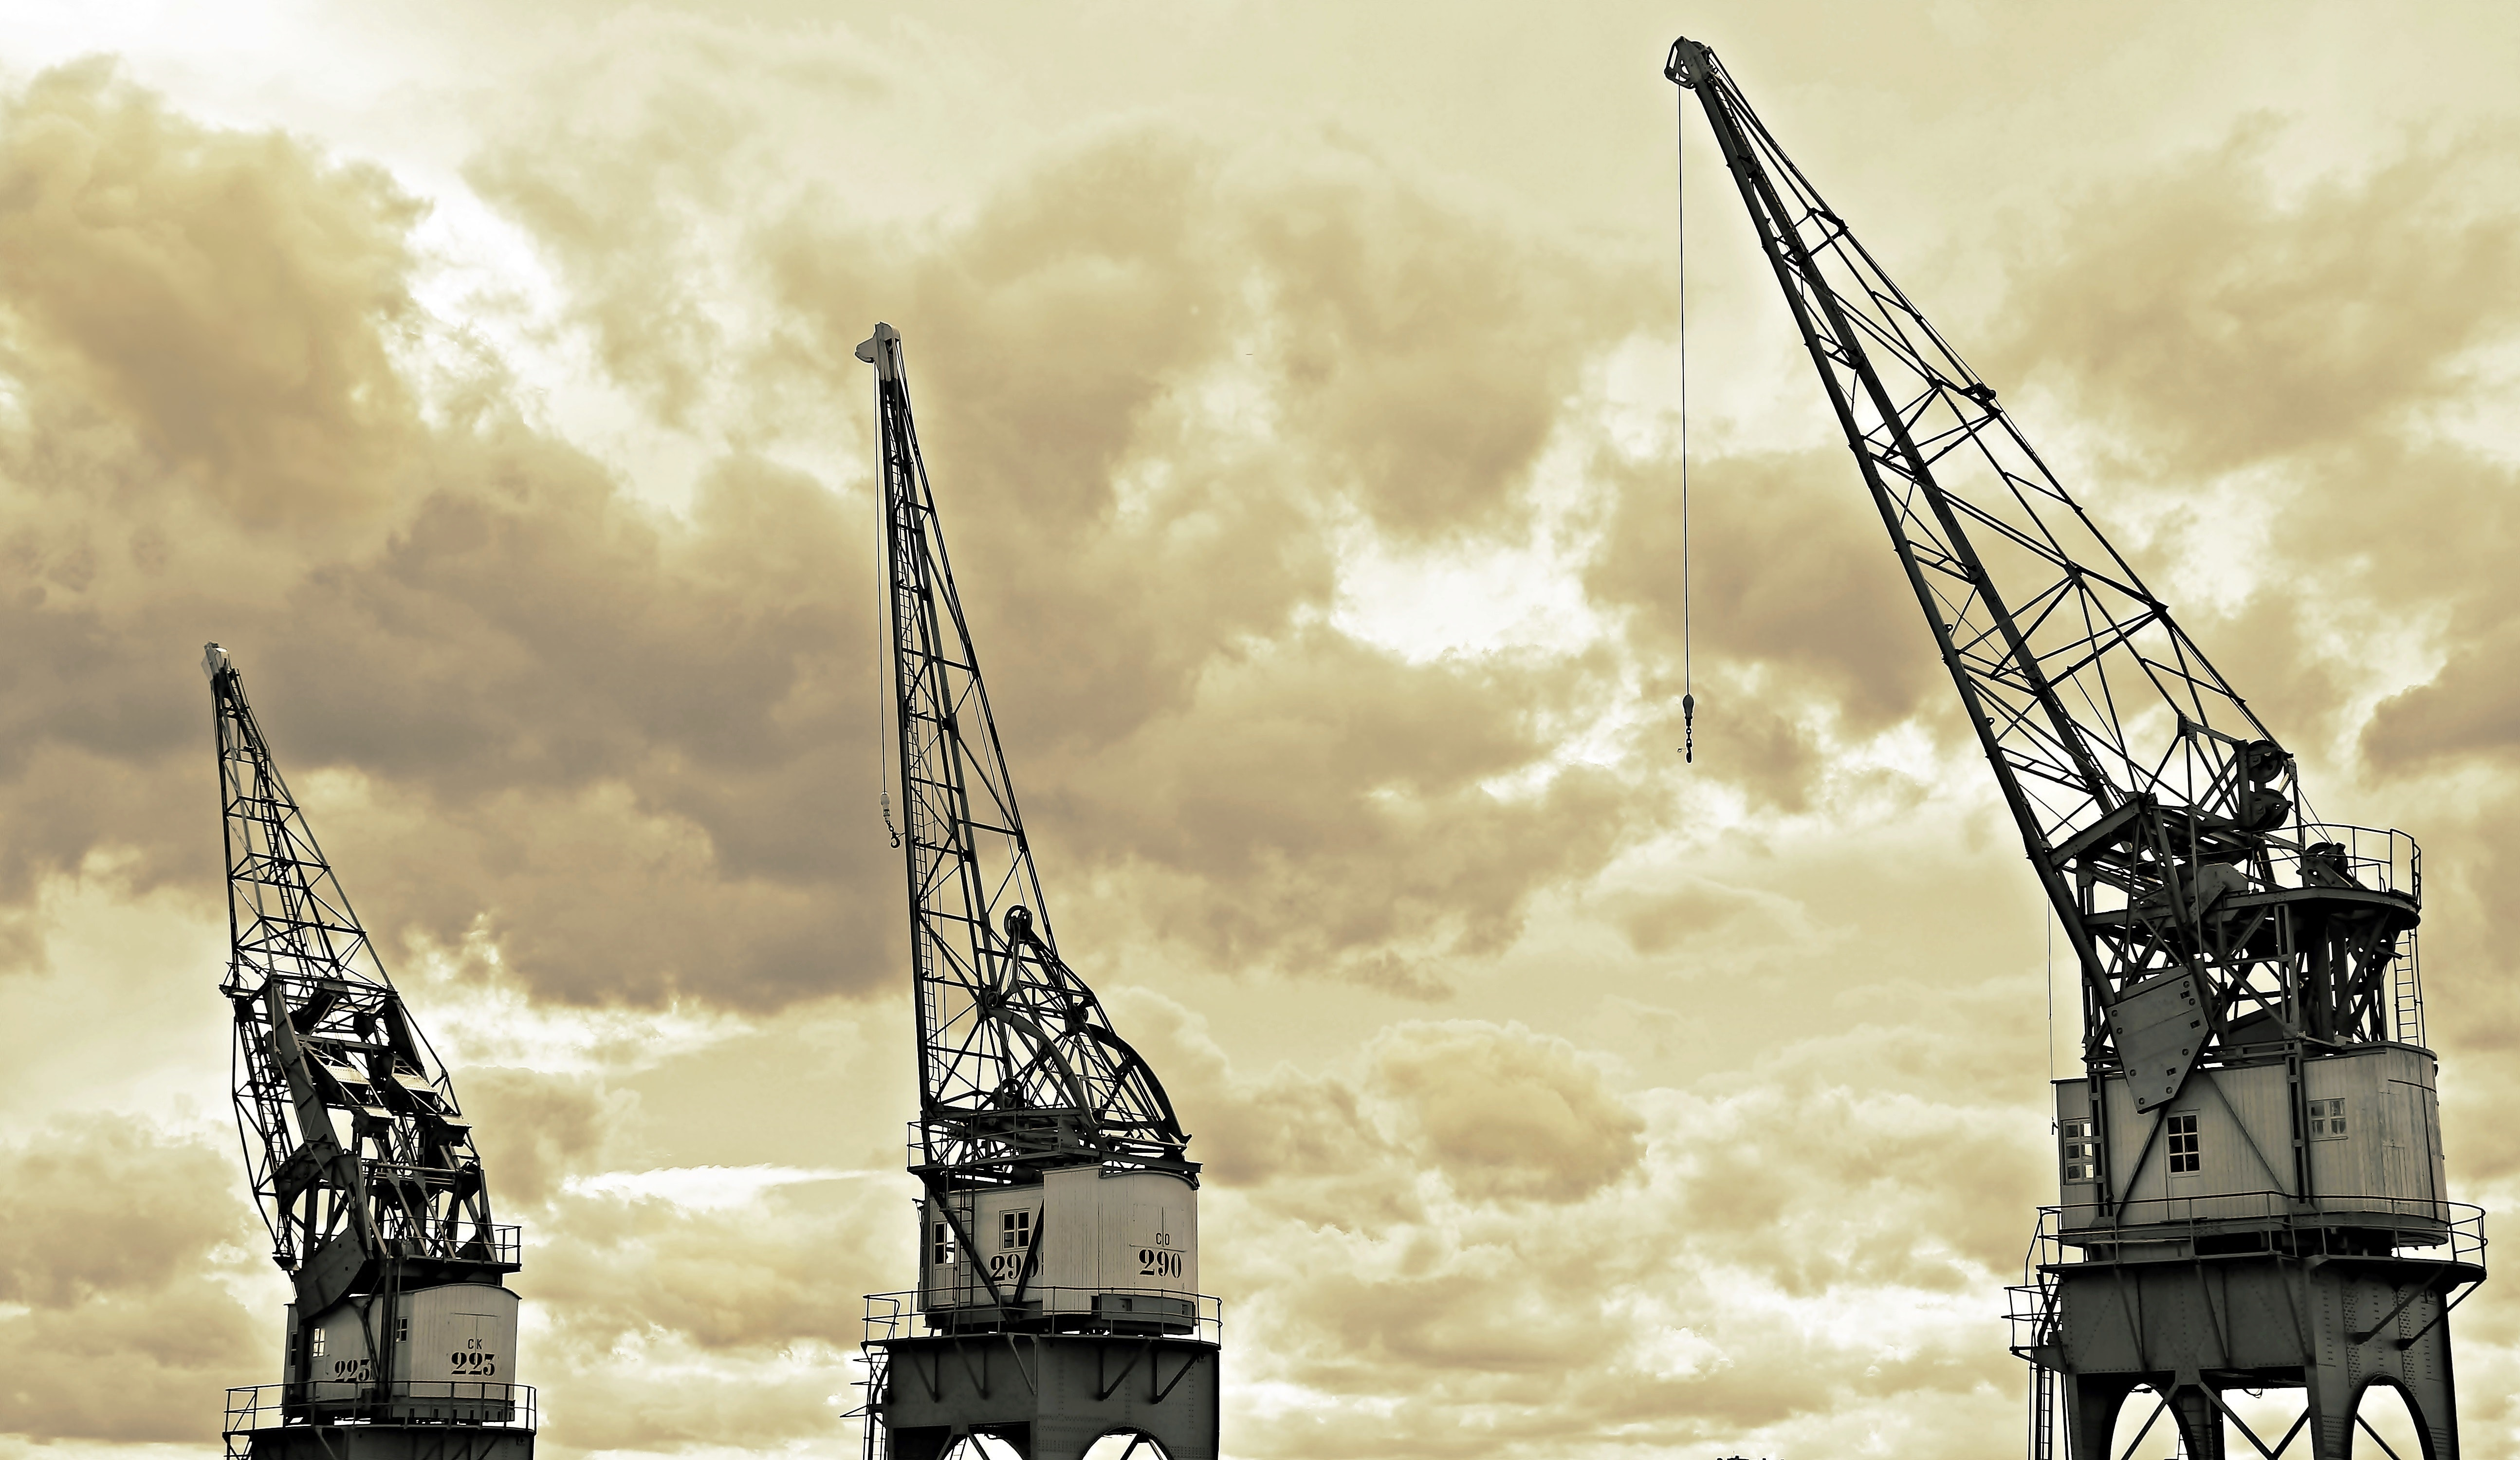 Architectural Photography of White and Black Metal Crane, Business, Clouds, Cranes, Equipment, HQ Photo